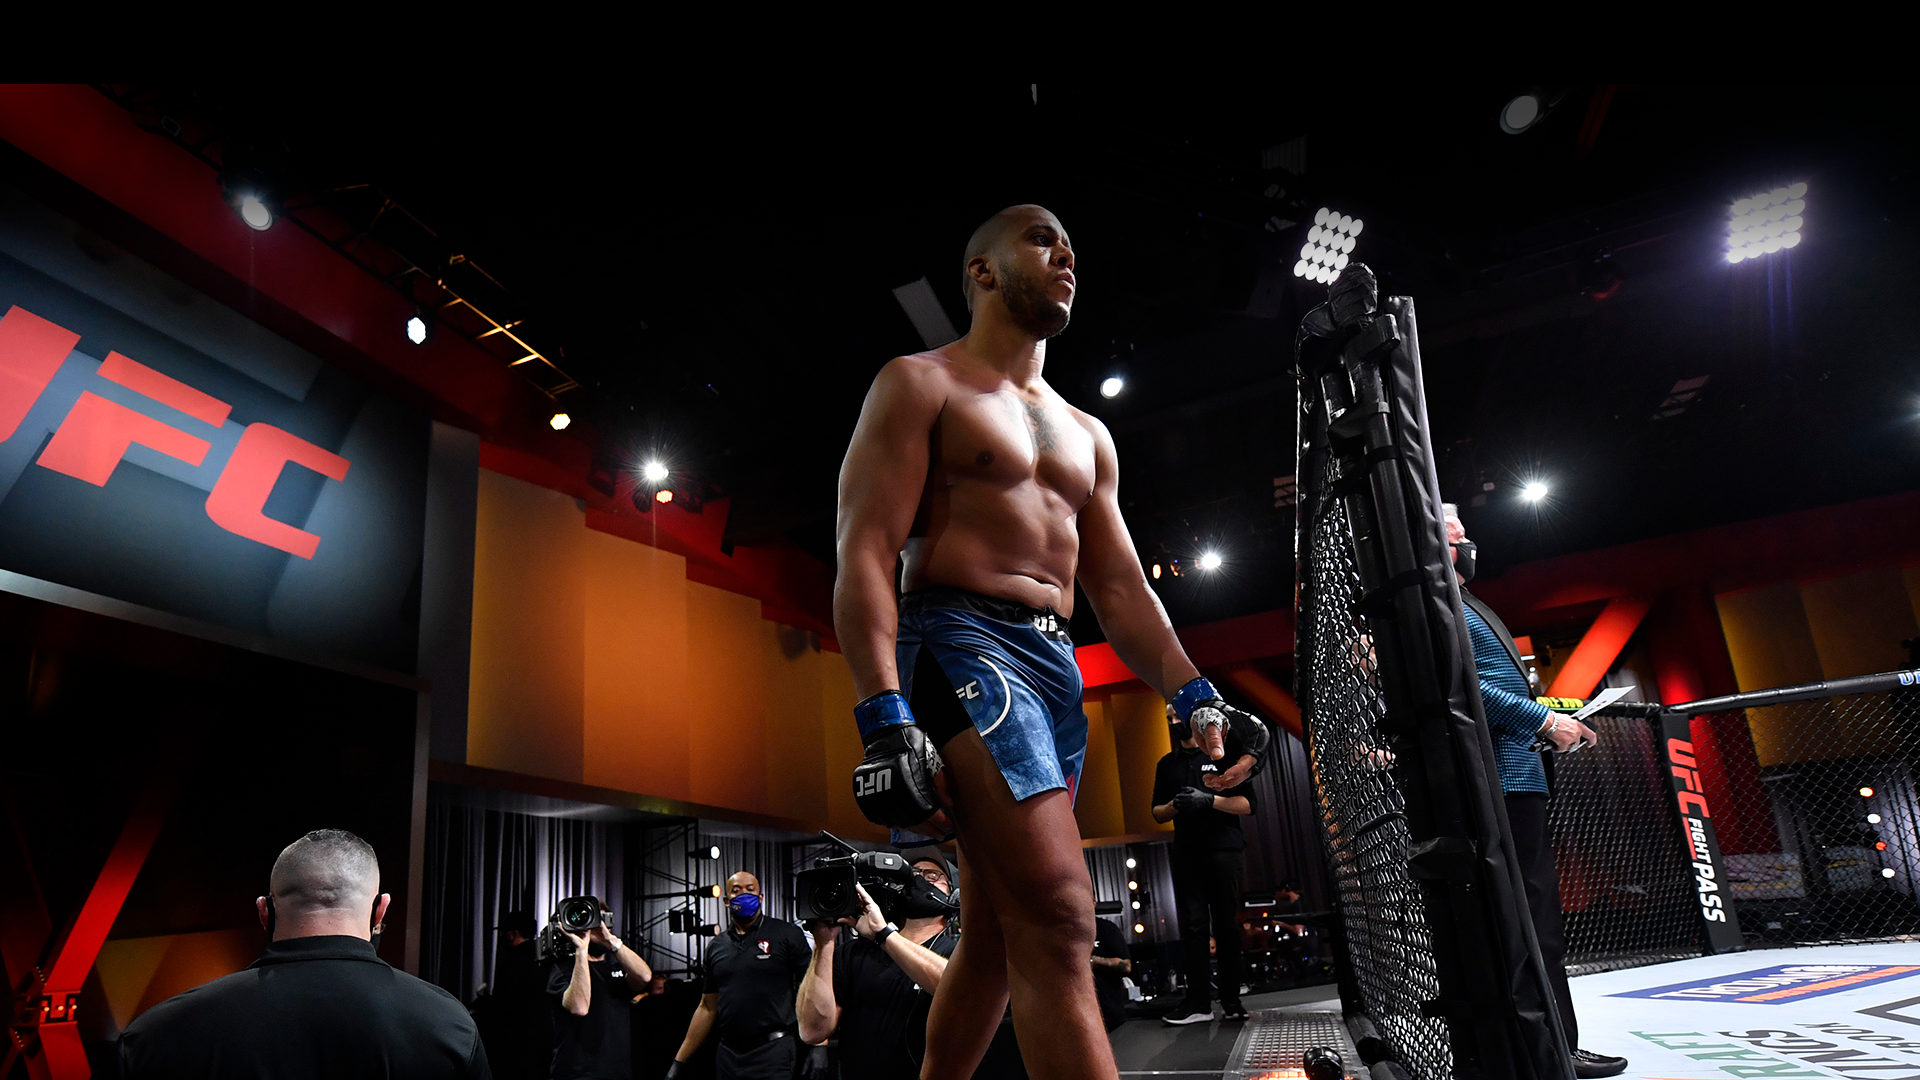 Ciryl Gane of France prepares to enter the Octagon prior to his heavyweight bout against Junior Dos Santos of Brazil during the UFC 256 event at UFC APEX on December 12, 2020 in Las Vegas, Nevada. (Photo by Jeff Bottari/Zuffa LLC)